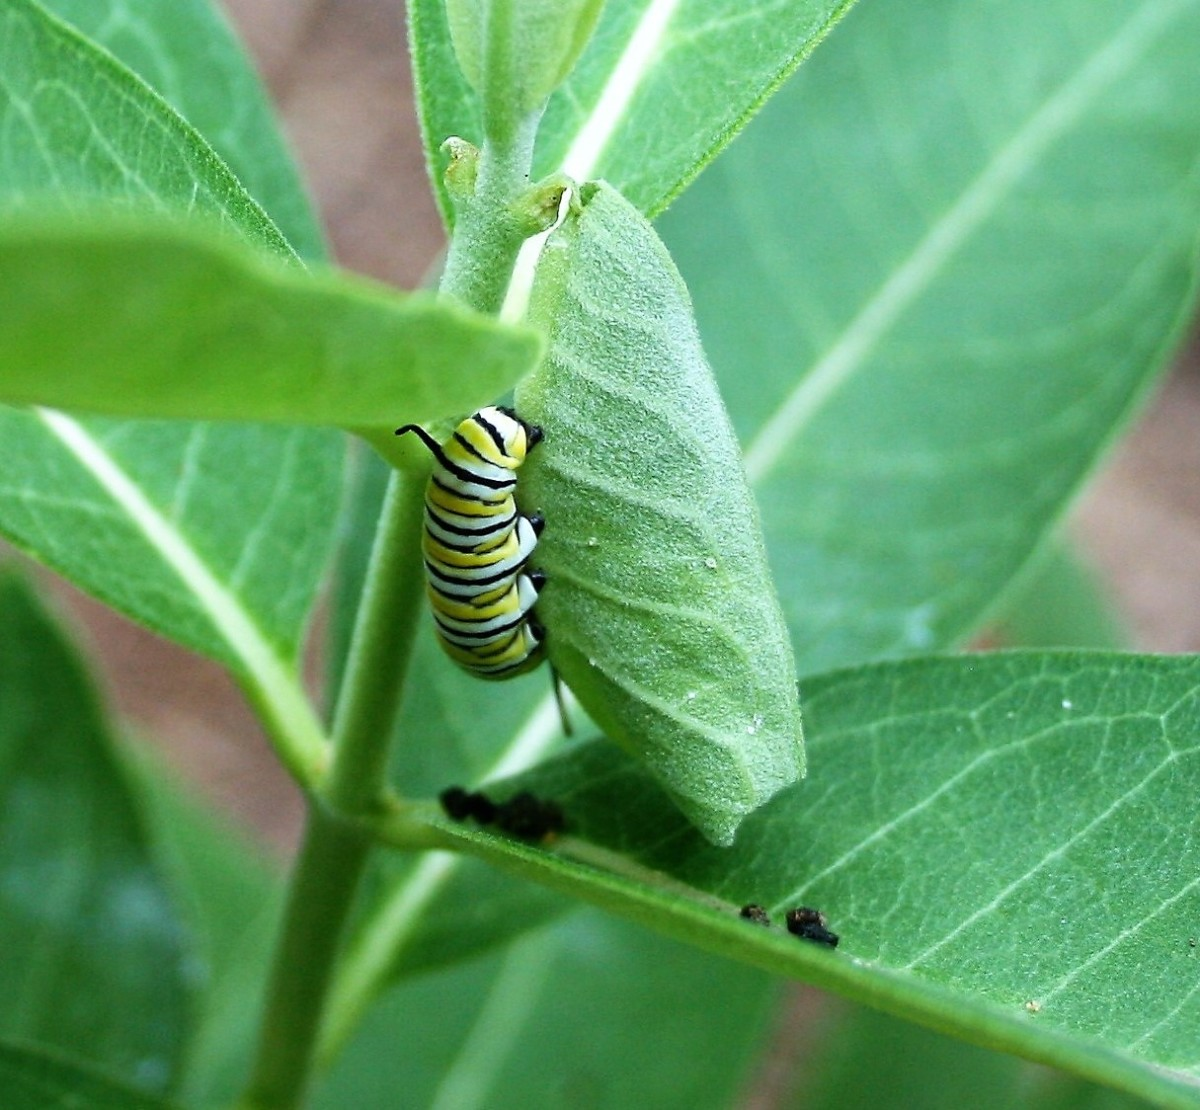 Milkweeds are host plants for several types of pollinators, including Monarchs, Queen butterflies and Tussock moths. Pictured: a Monarch caterpillar.